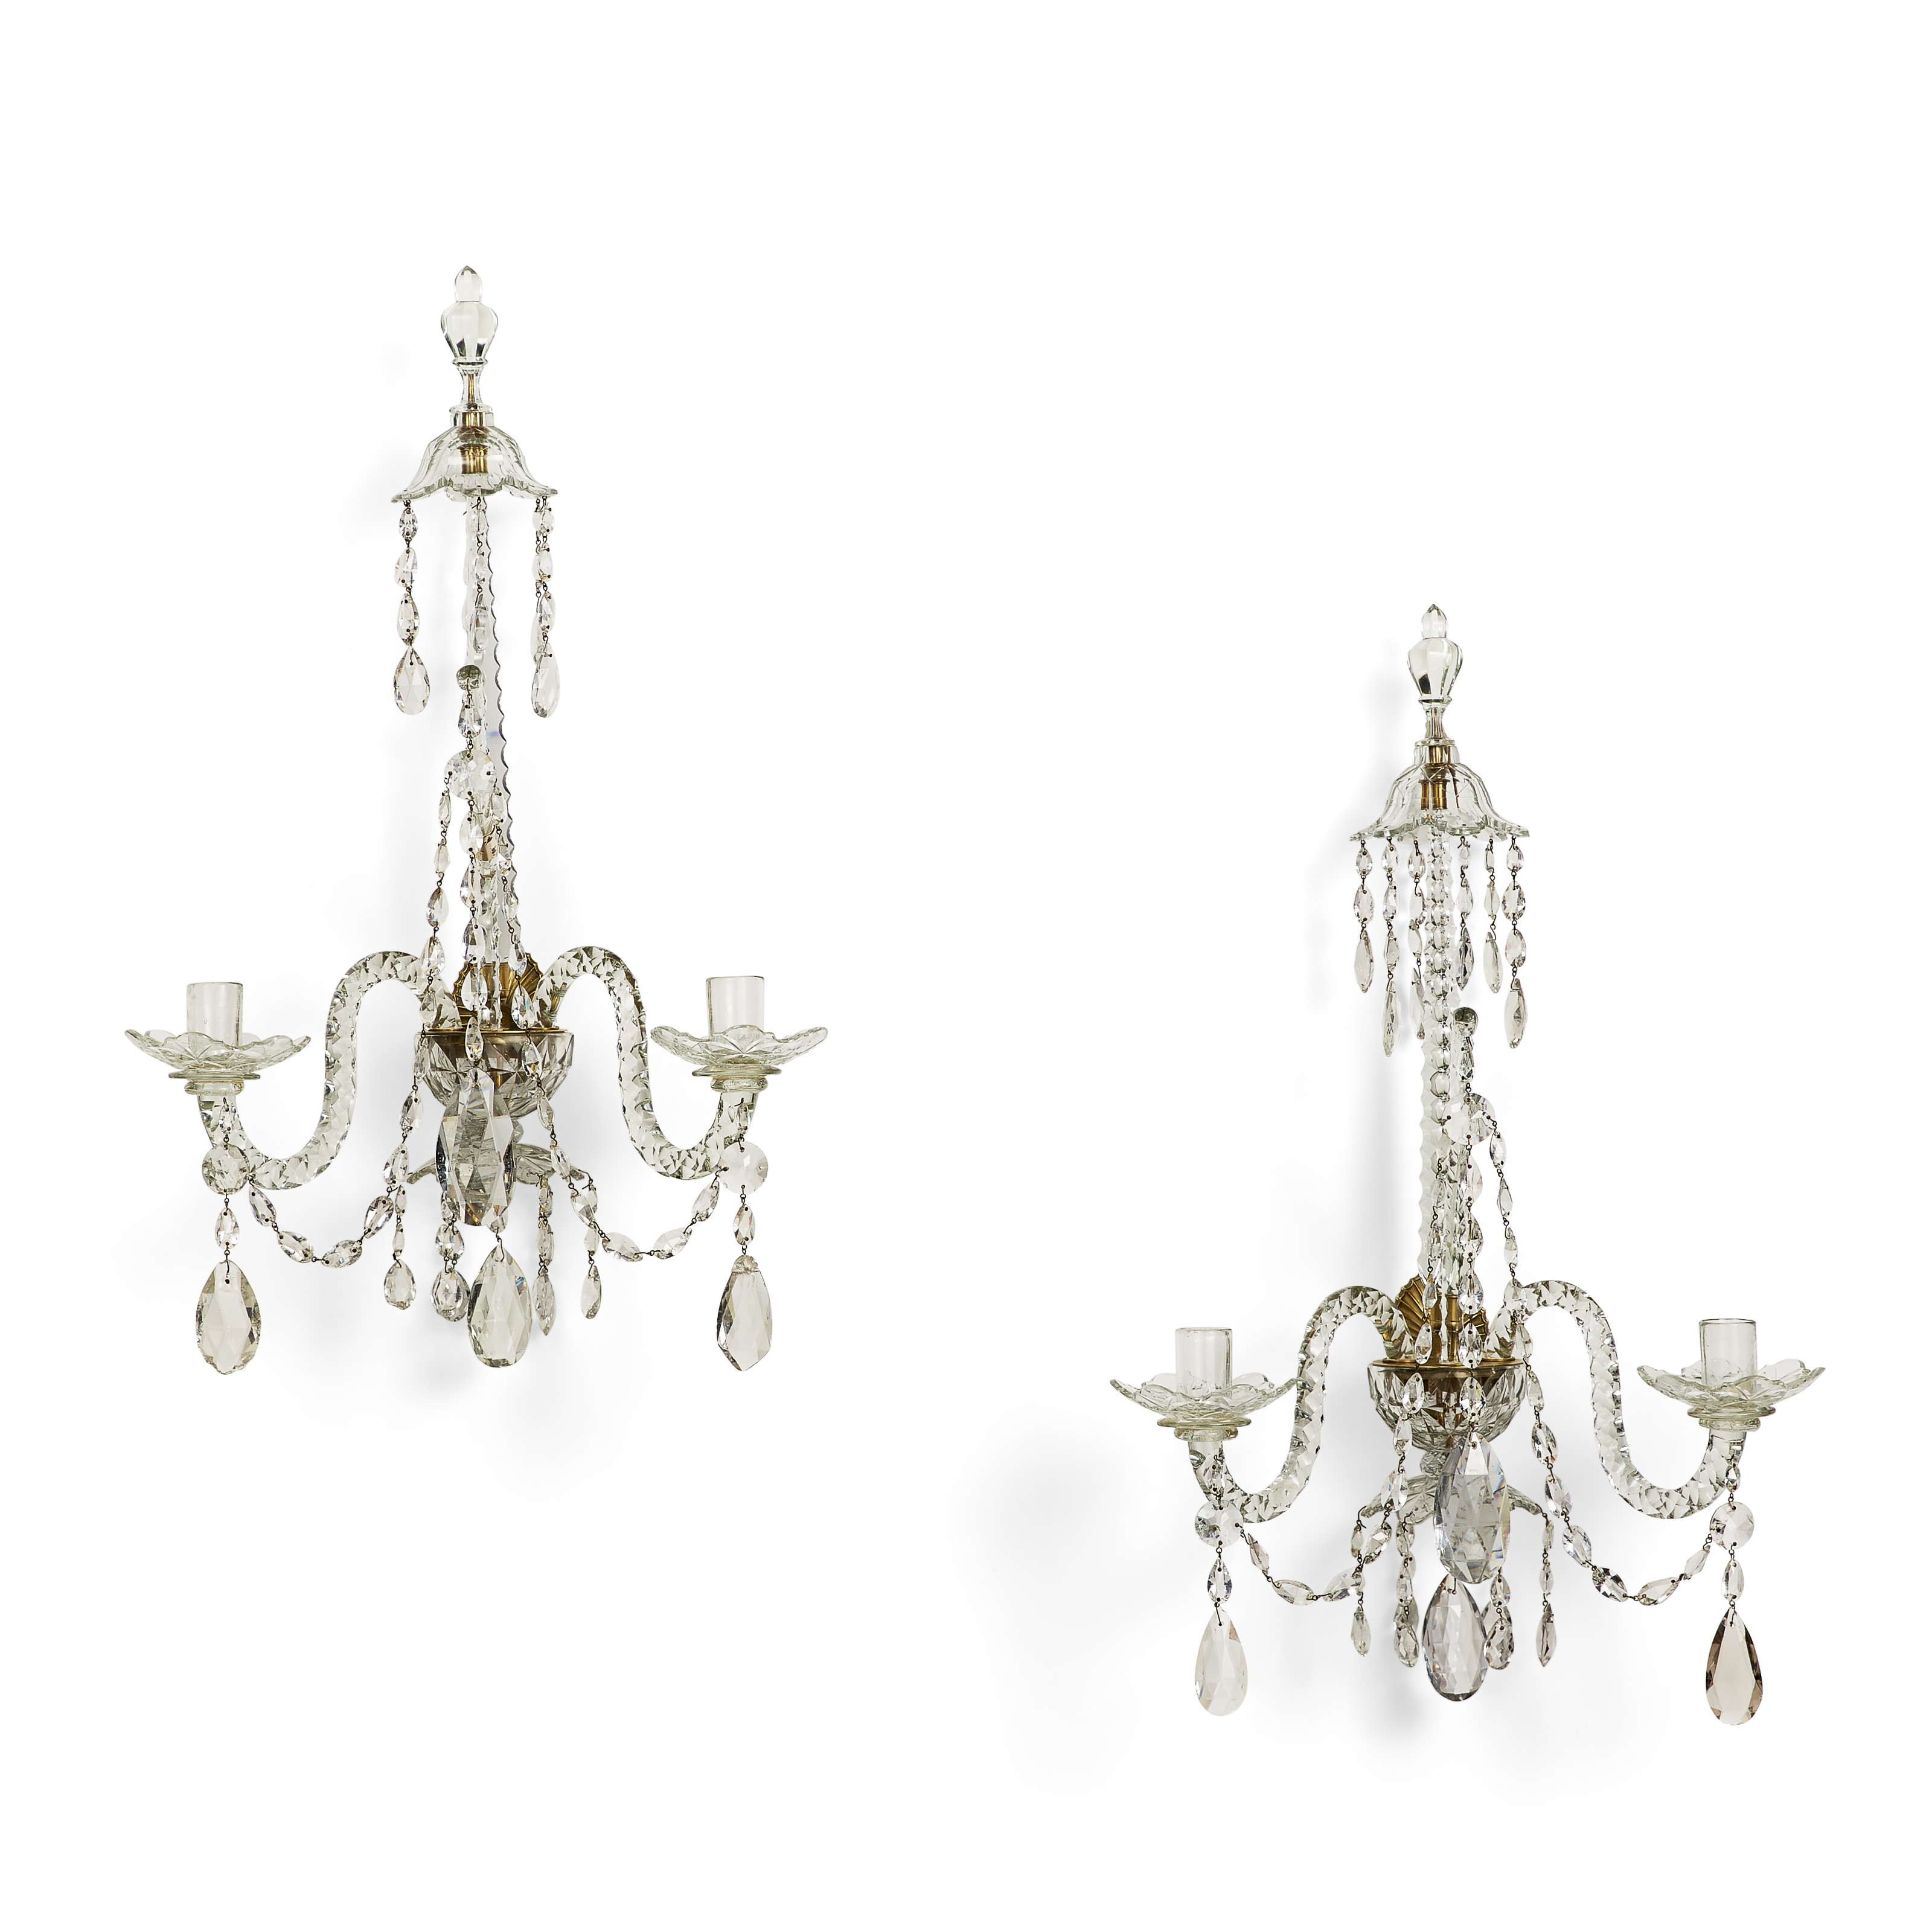 A pair of late George III cut-class two-branch wall lights, c. 1790. 28½  in (72.5  cm) high, 18  in (46  cm) wide, 12  in (30.5  cm) deep. Estimate $8,000-12,000. Offered in The Collector English & European Furniture, Ceramics, Silver & Works of Art on 5-19 October 2021 at Christies Online